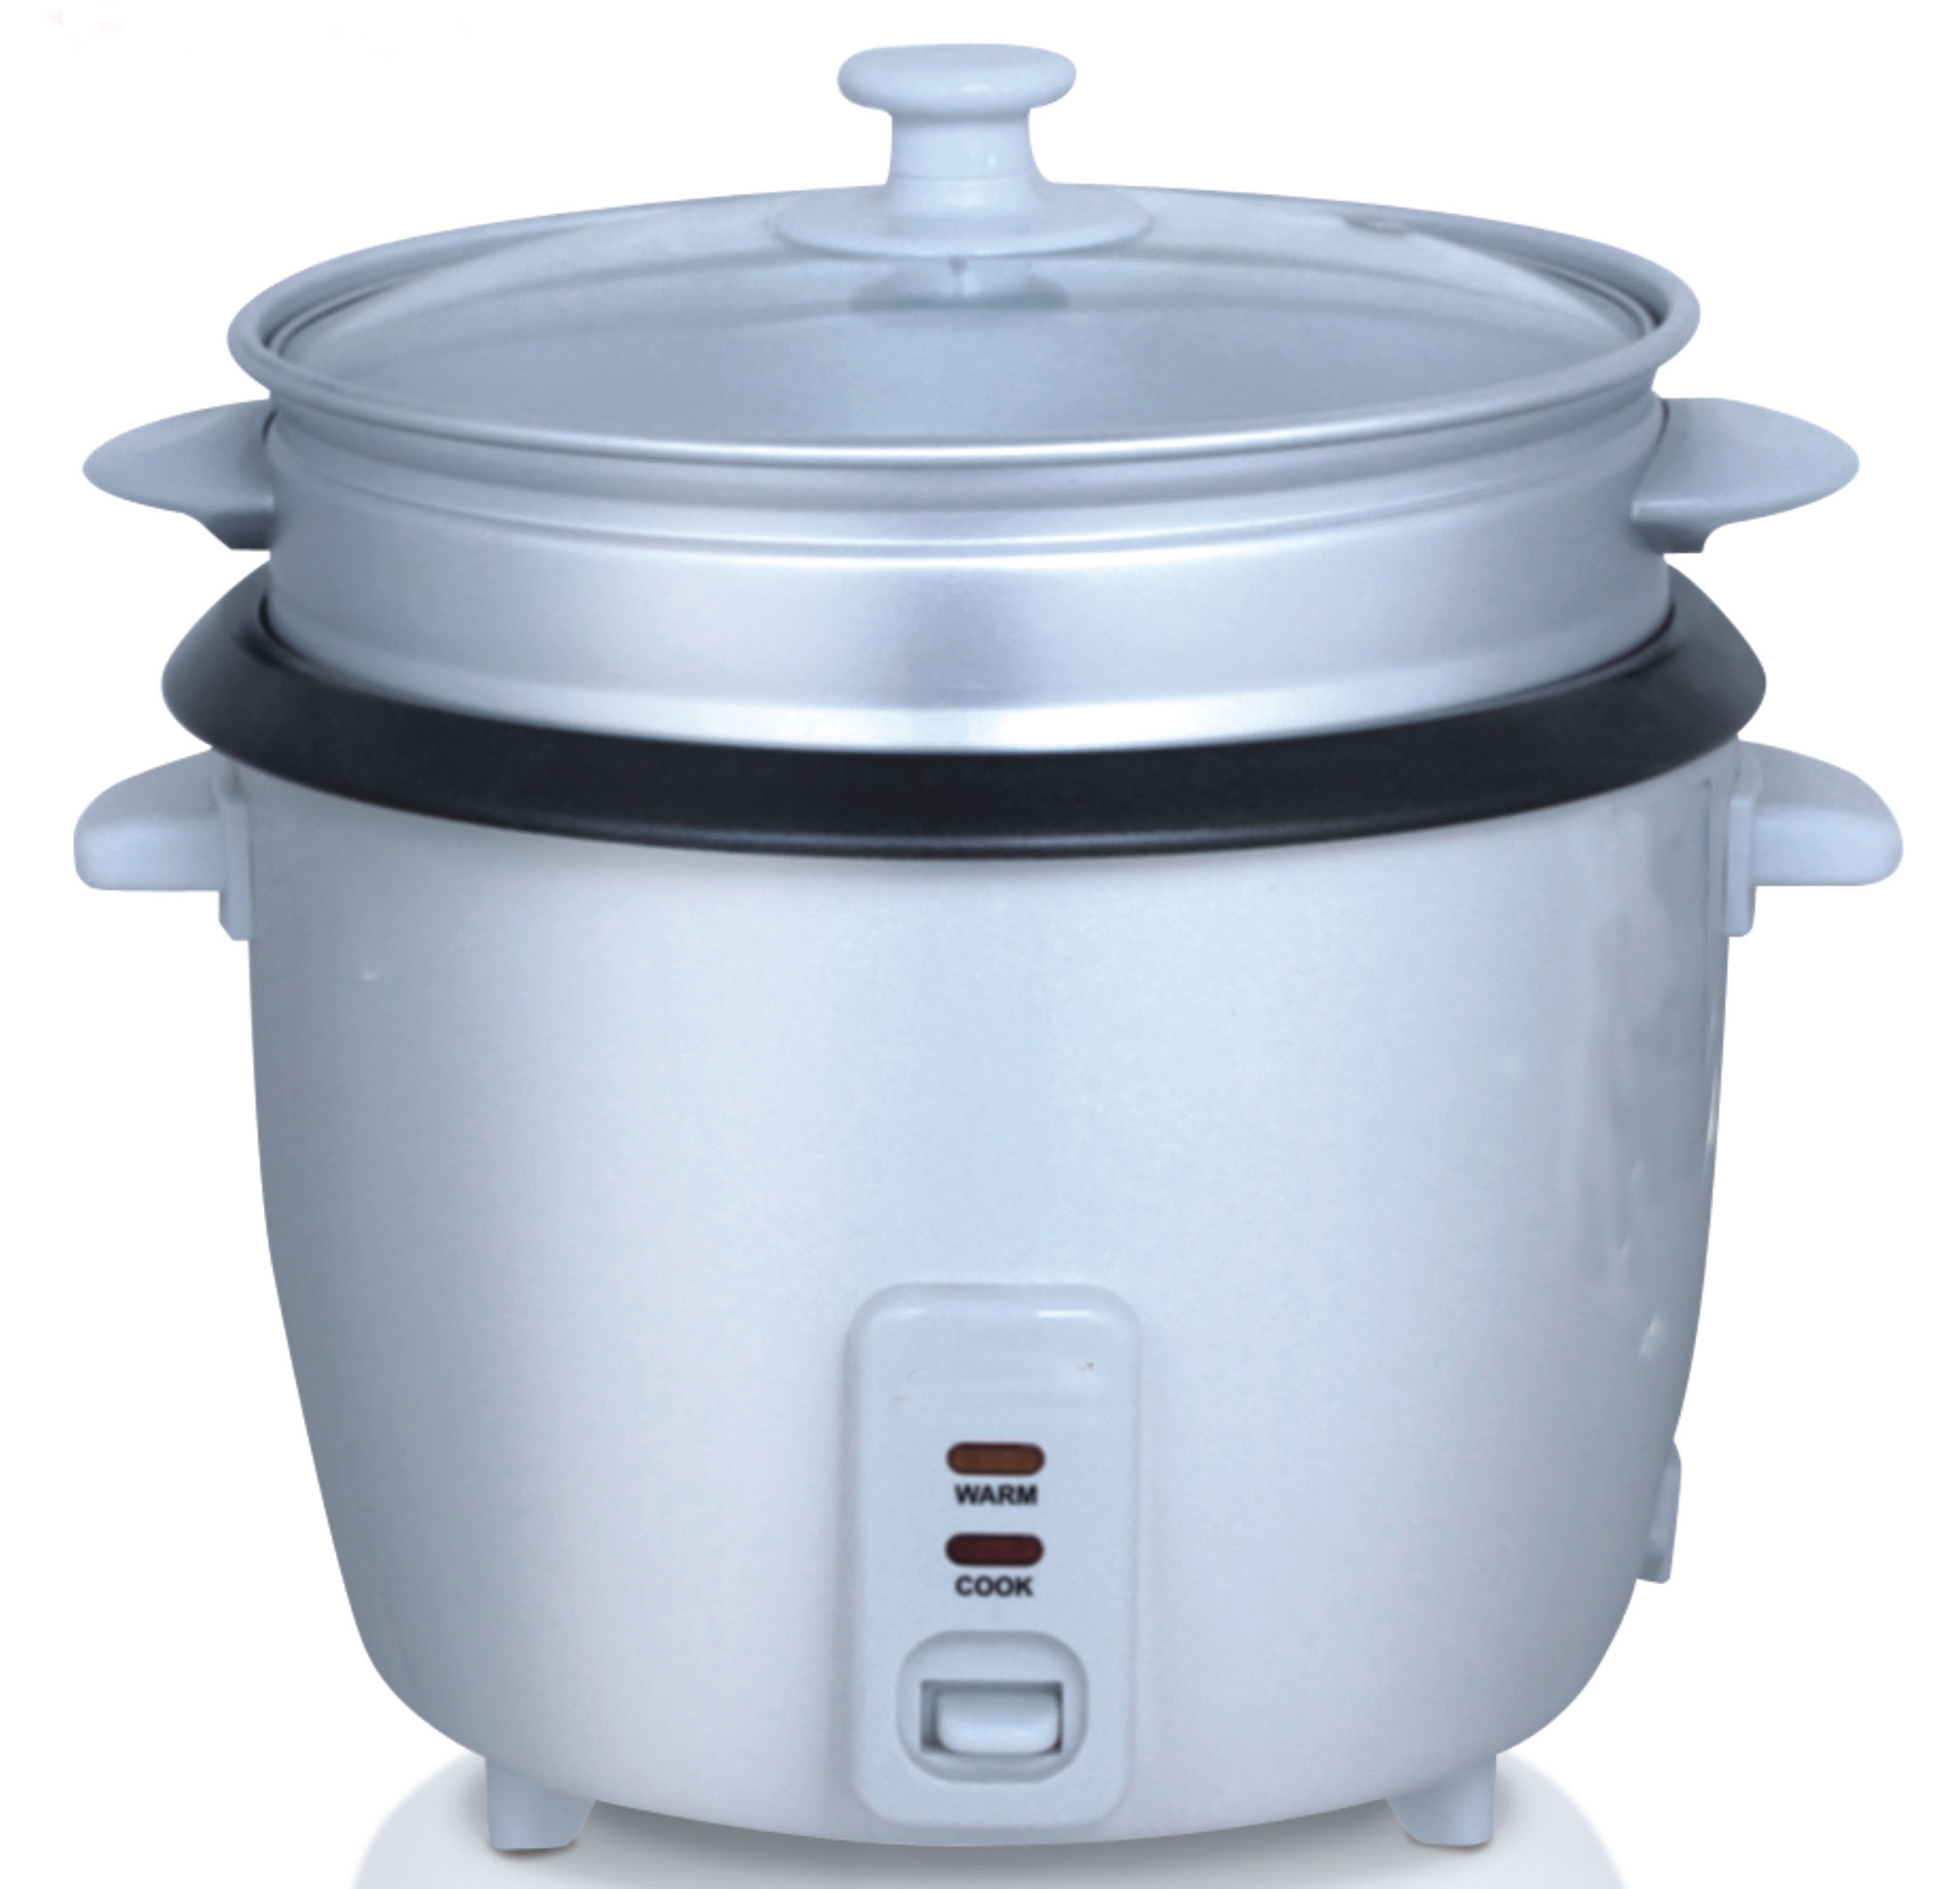 Drum rice cooker TPGB60-01